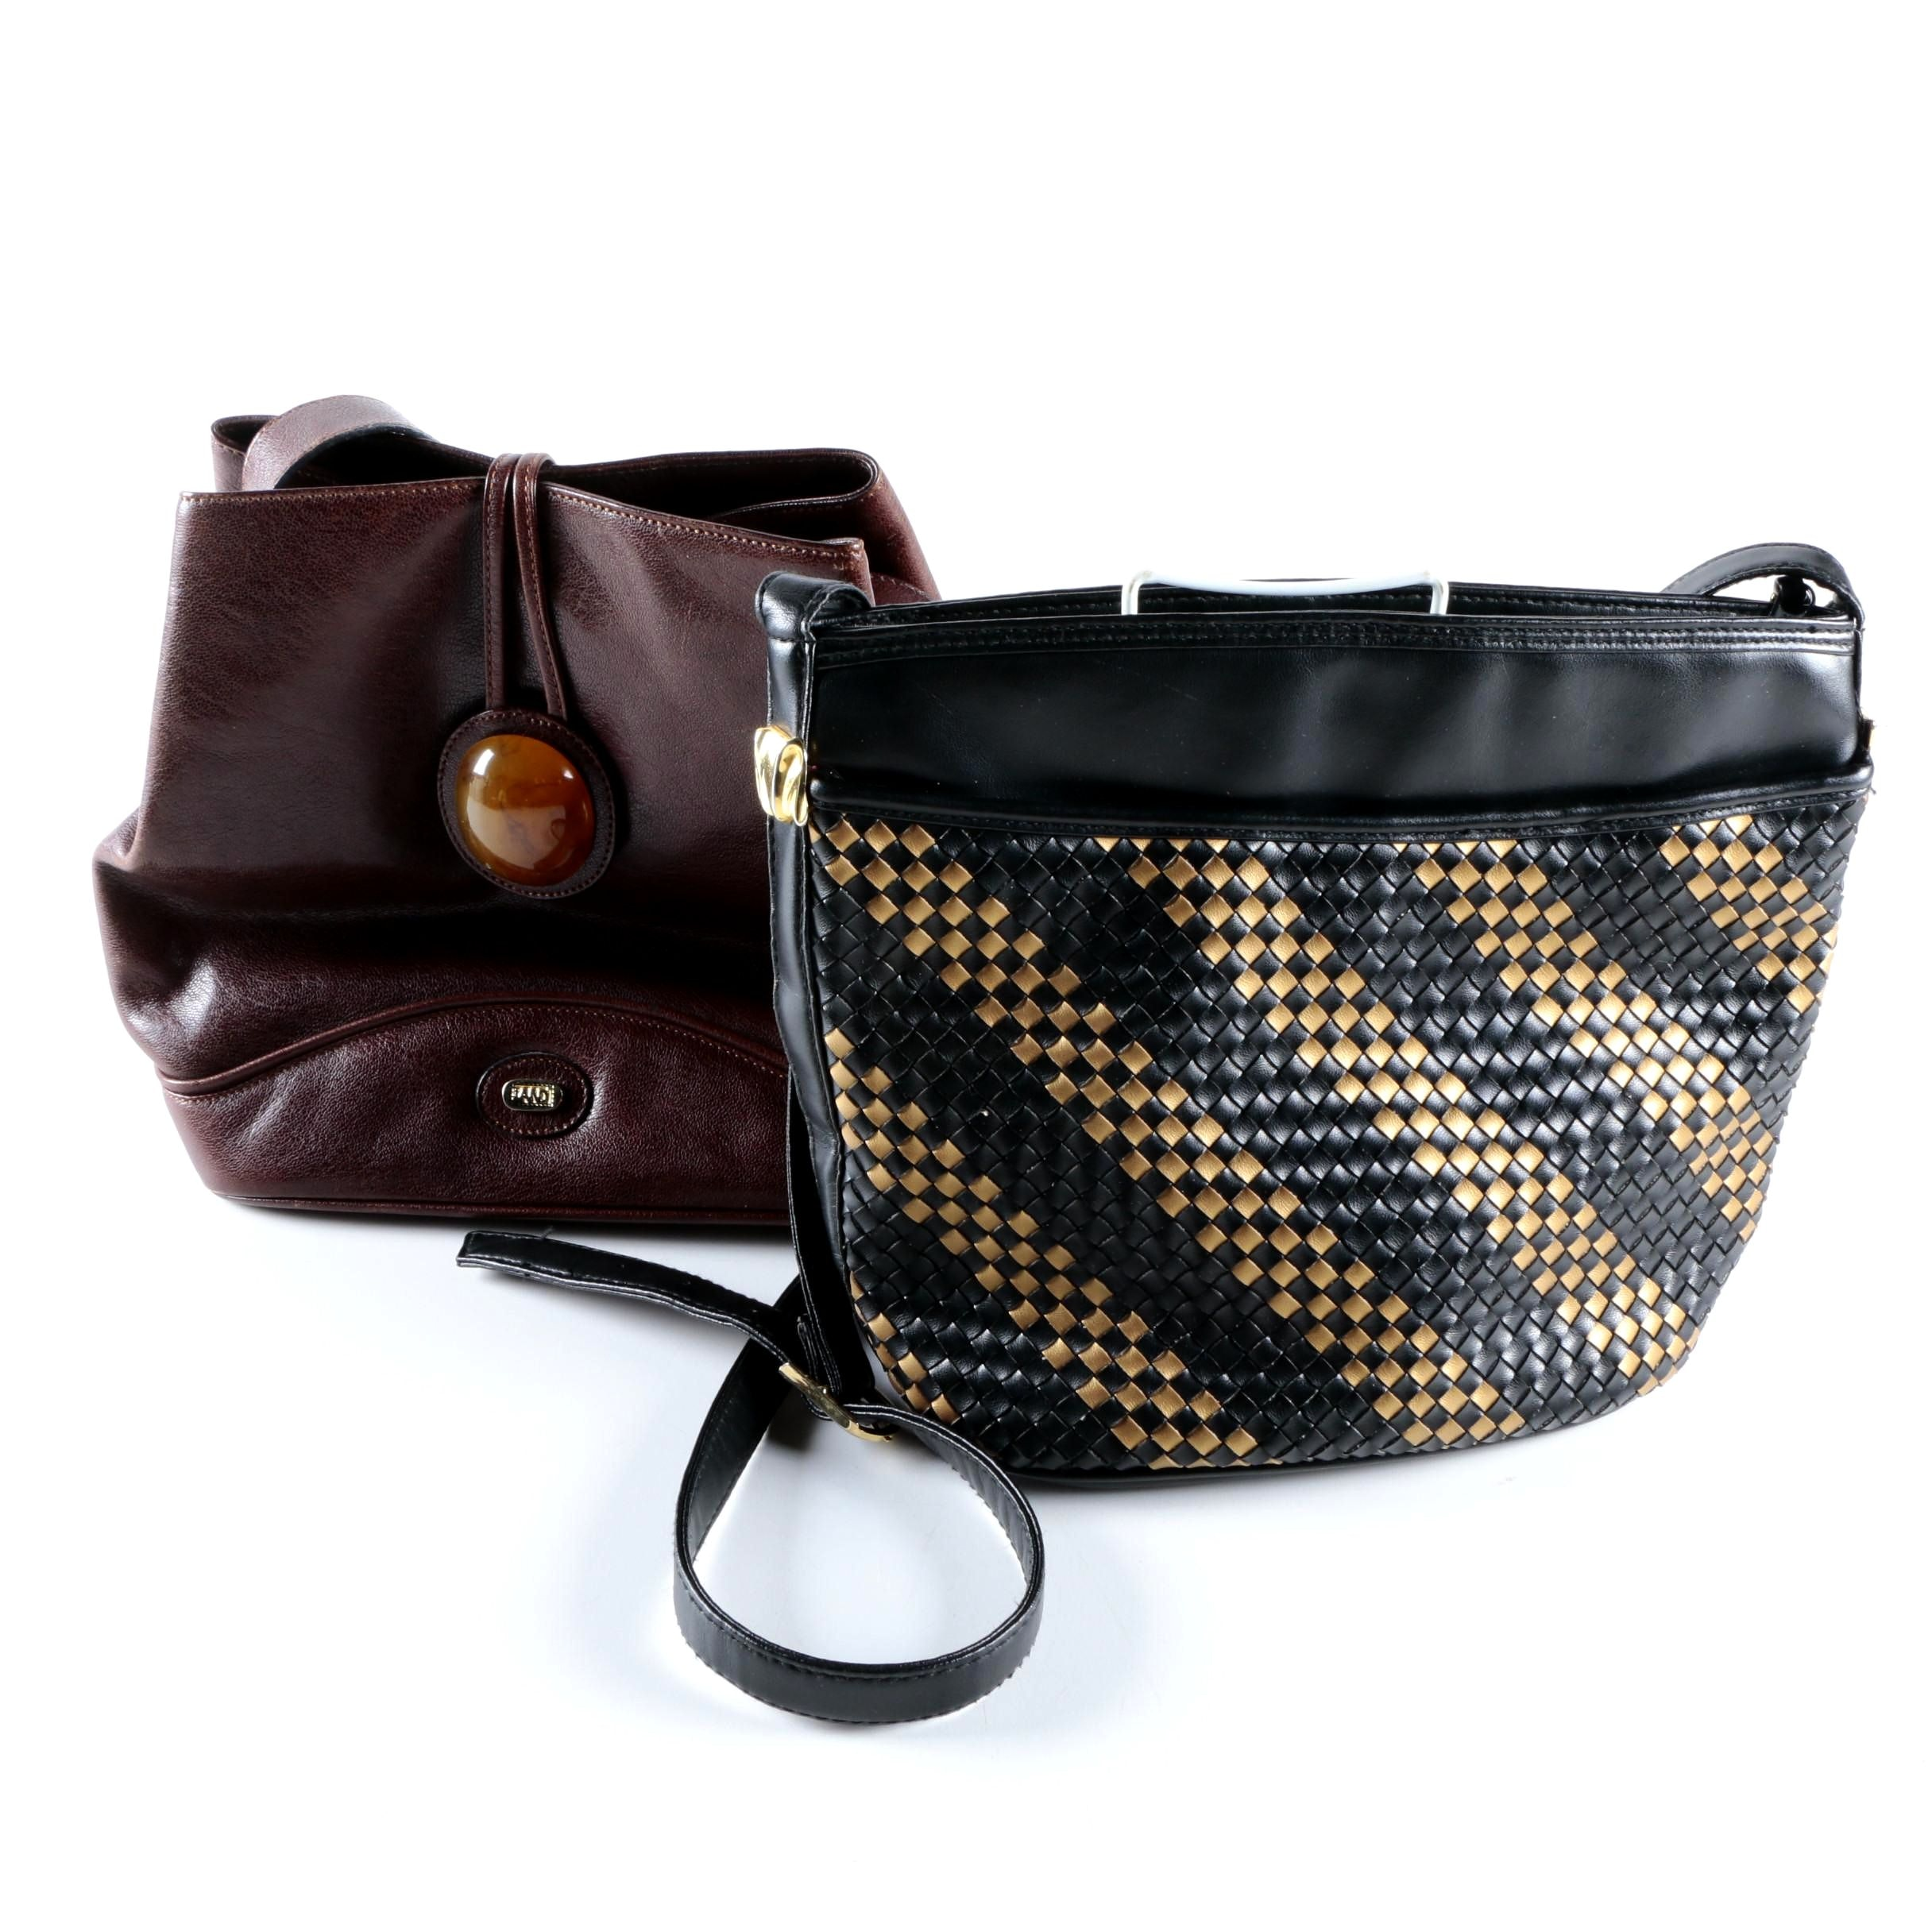 Women's Shoulder Handbags